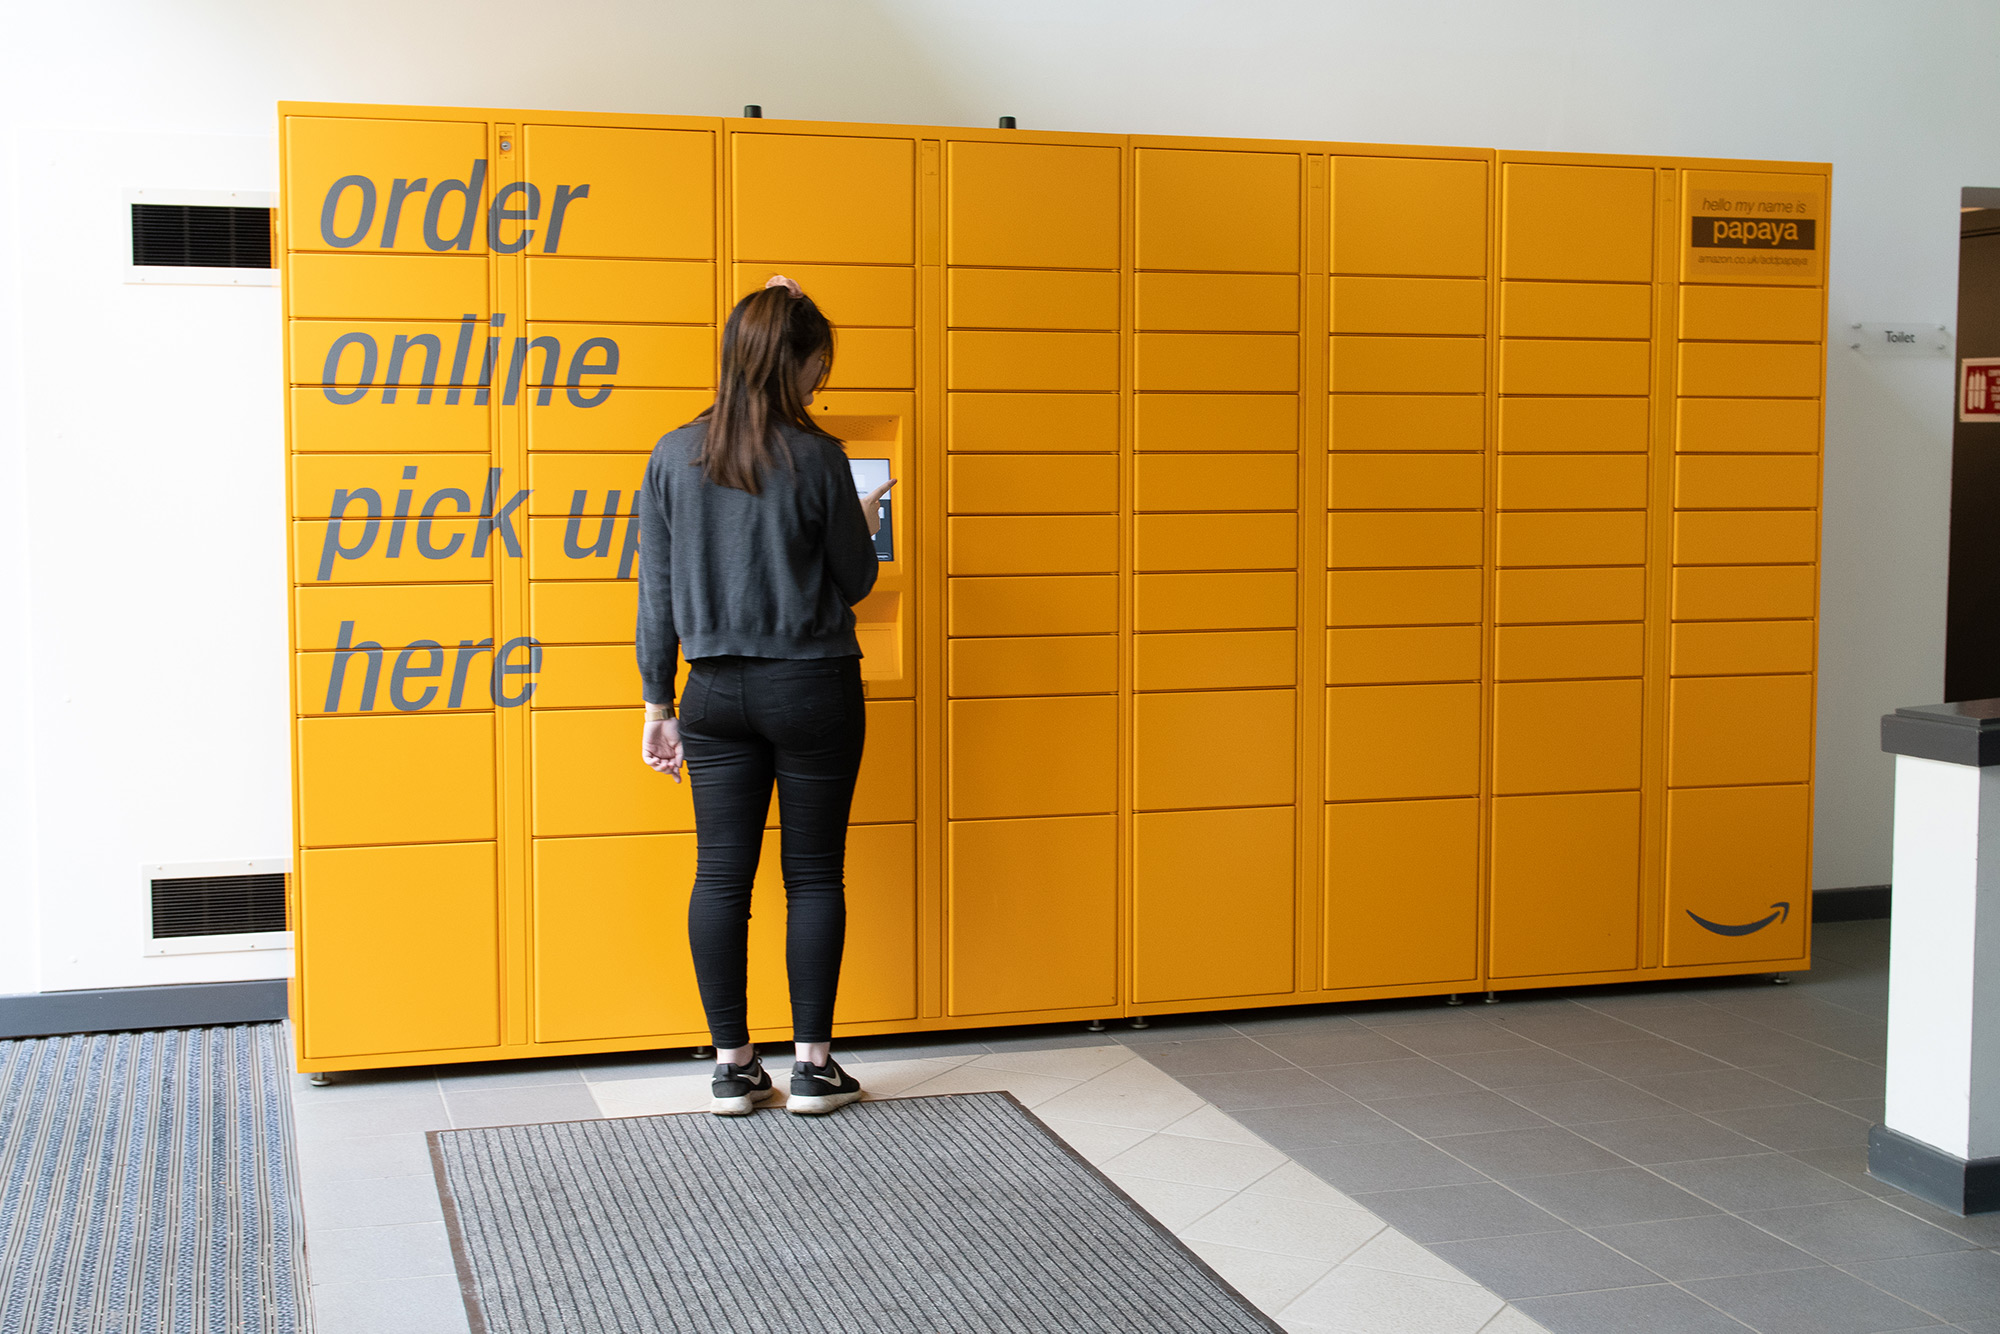 a person standing in front of an amazon locker